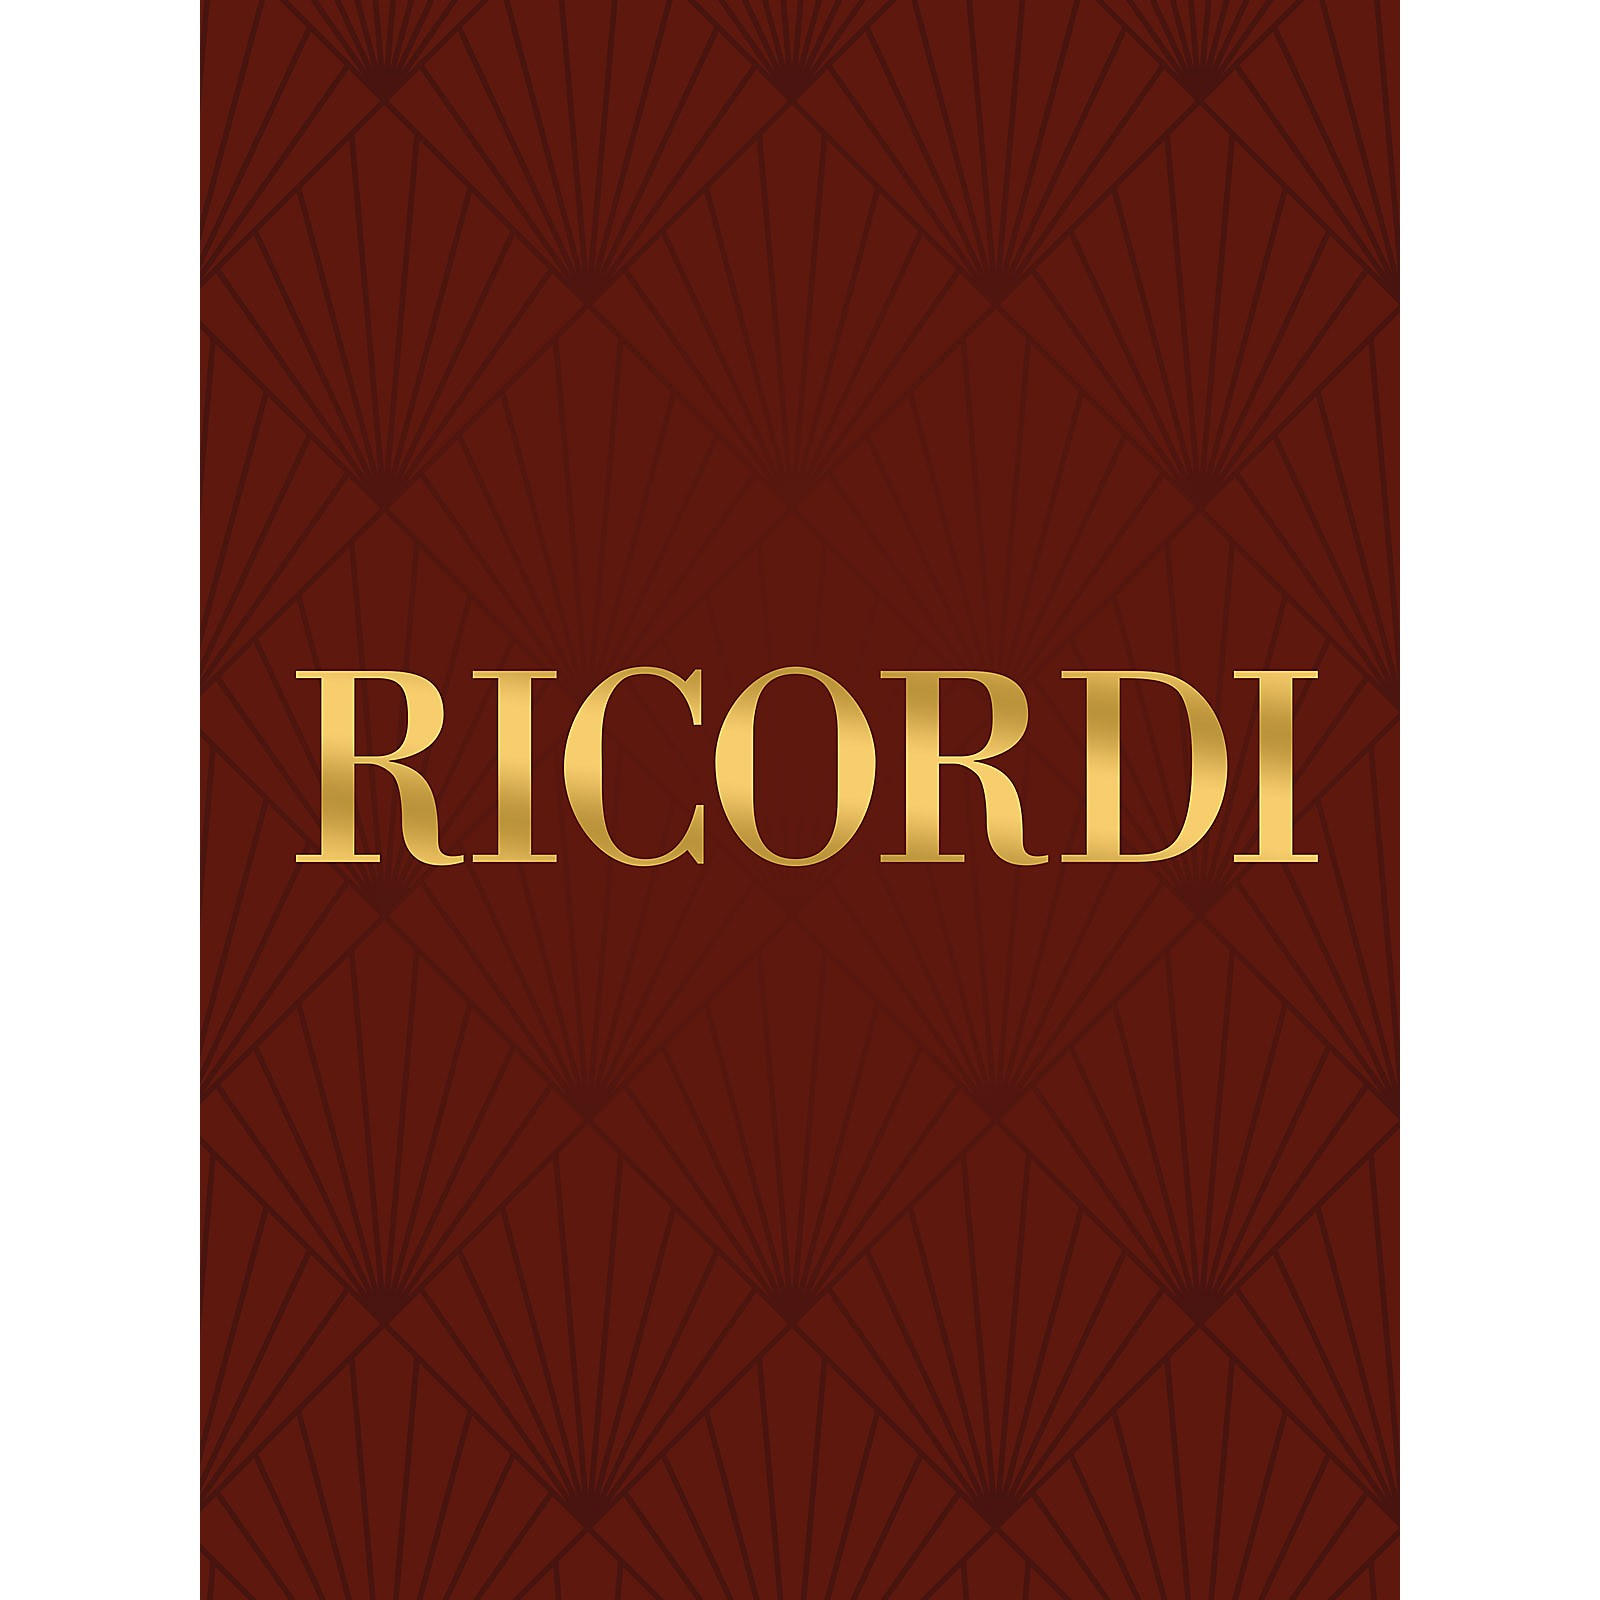 Ricordi Adagio in G minor Woodwind Solo Series  by Tomaso Giovanni Albinoni Edited by Remo Giazotto